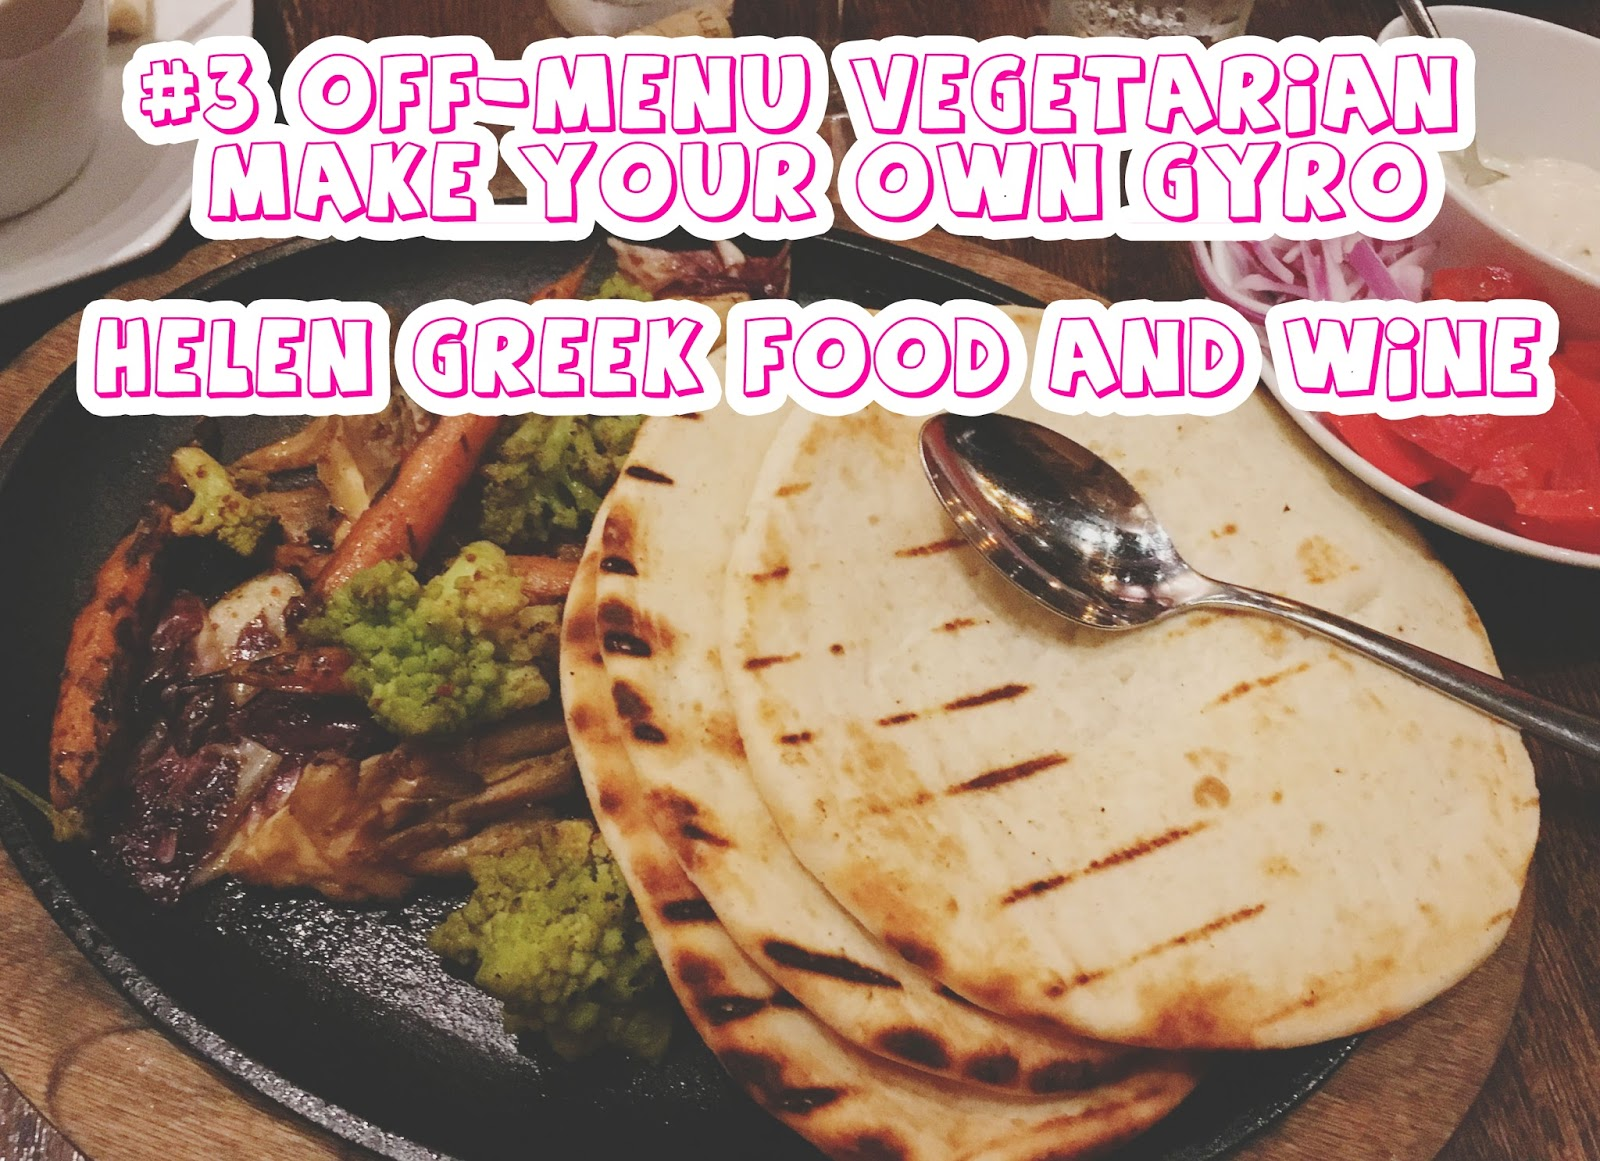 #3 Off-Menu Vegetarian/Vegan Make Your Own Gyro at Helen Greek Food and Wine - a restaurant in Houston, Texas